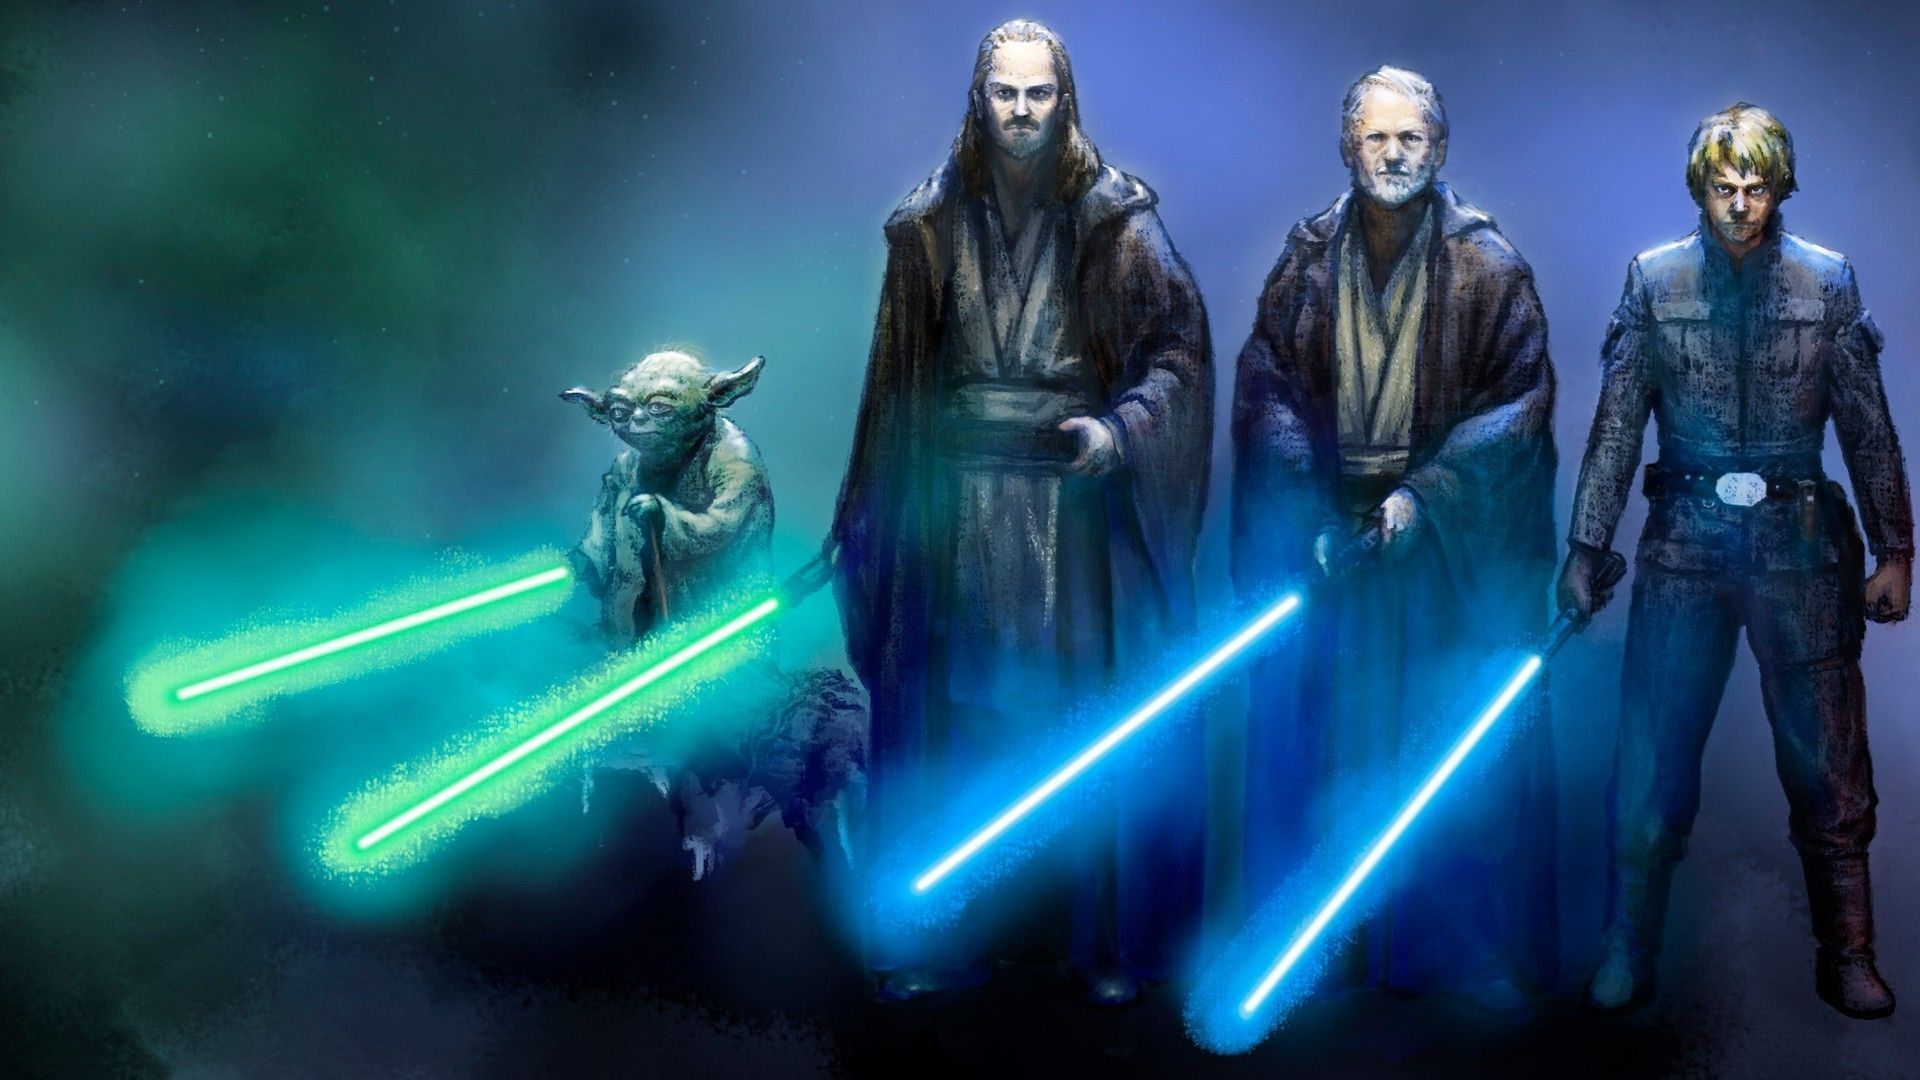 Star Wars Jedi Wallpapers Wide On Wallpaper Hd 1920 Star Wars Jedi 1920x1080 Download Hd Wallpaper Wallpapertip